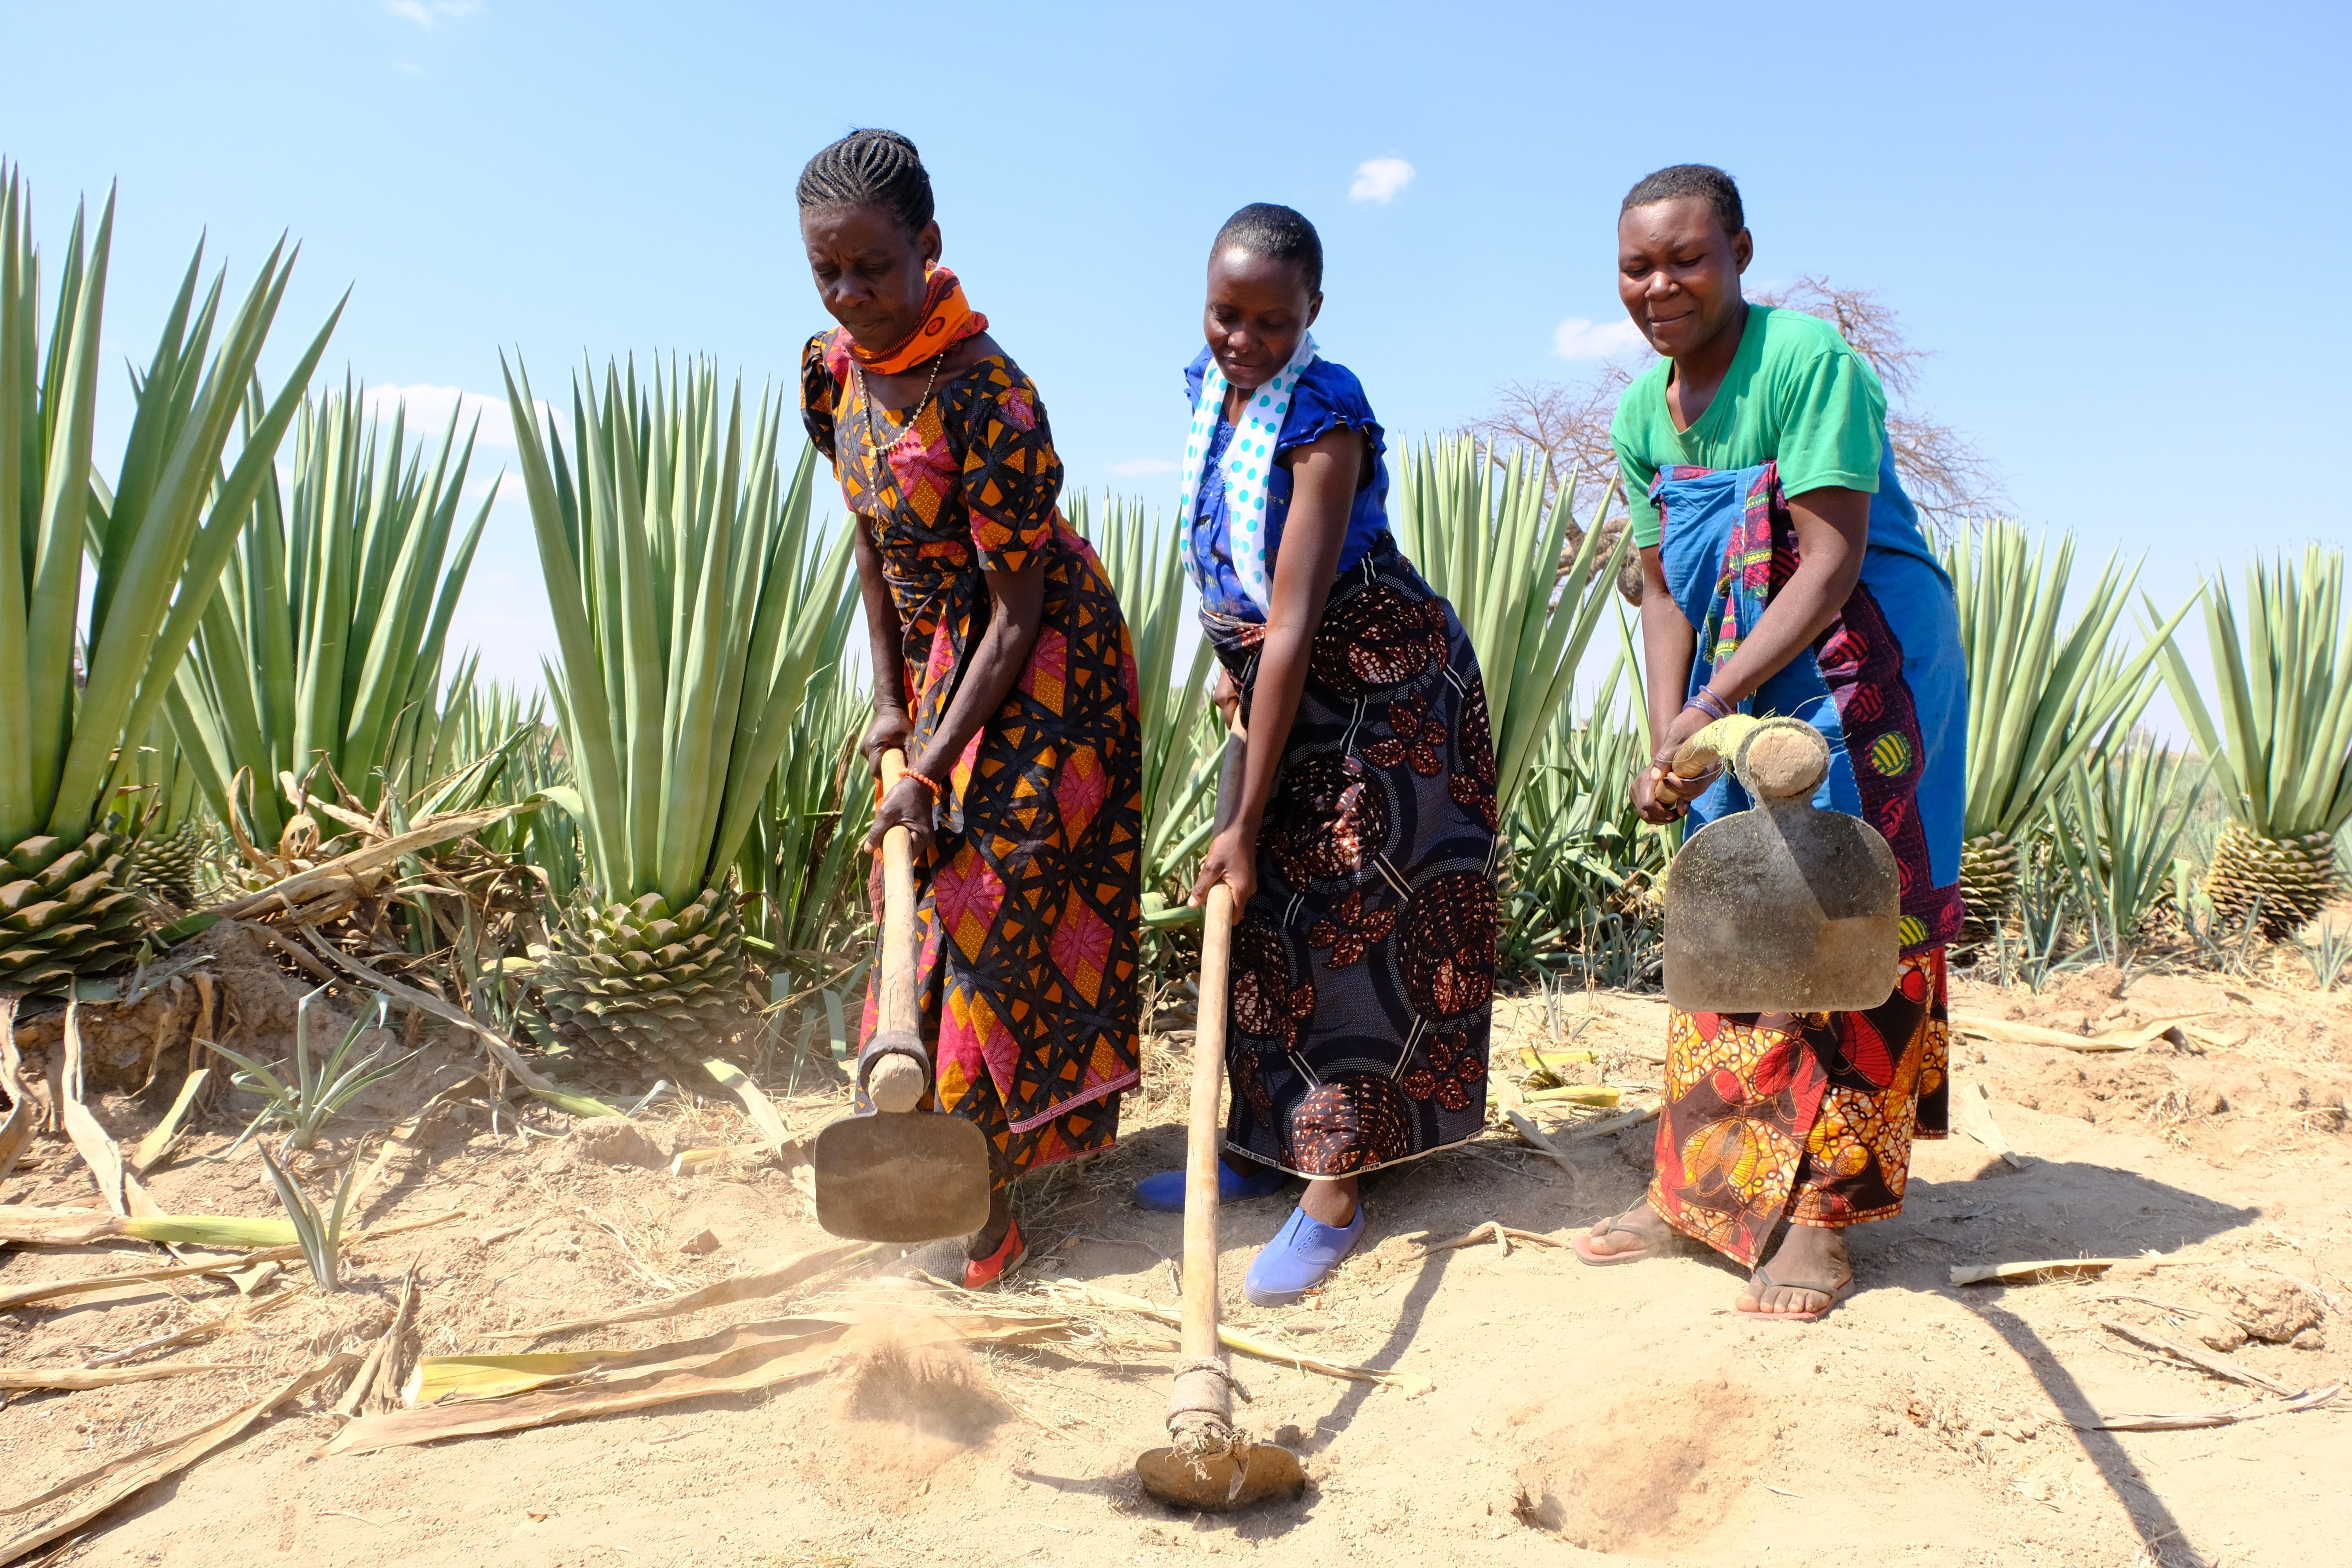 In the drought-ridden regions of Tanzania, farmers are switching to drought-resistant crop species; establishing support groups and agricultural cooperatives to strengthen smallholder farmers' collective bargaining power